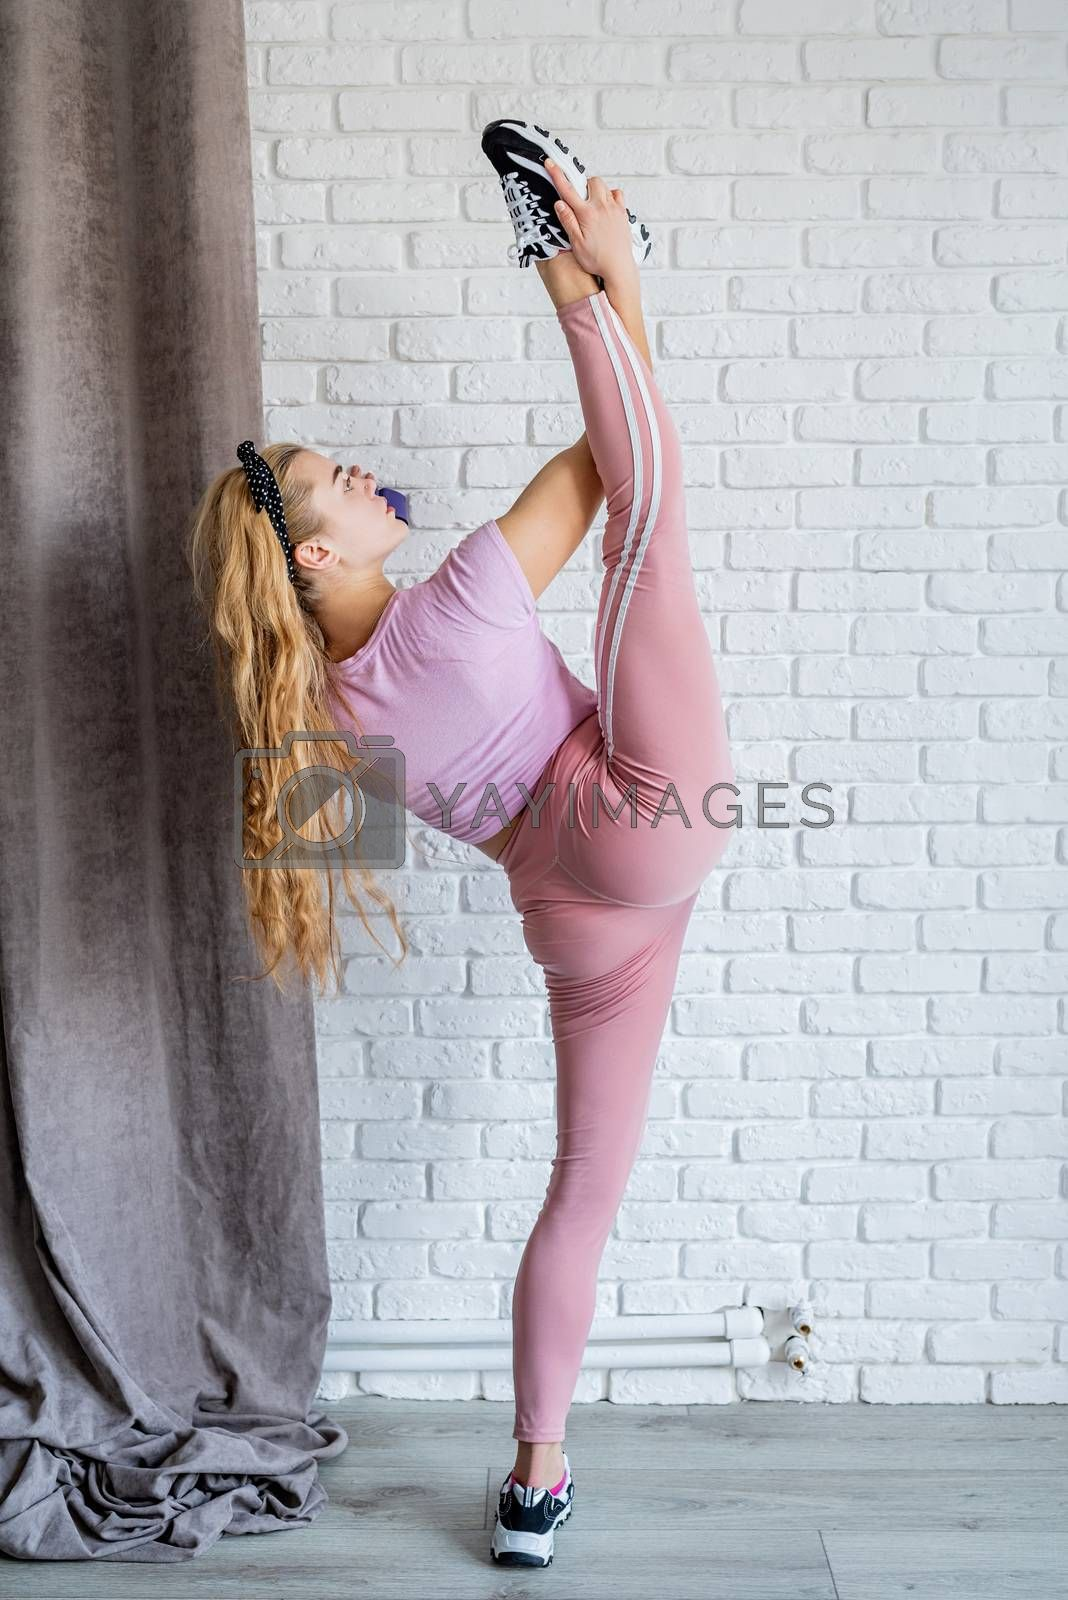 Fitness, sport, training and lifestyle concept. Athletic woman wearing pink sportswear stretching at home